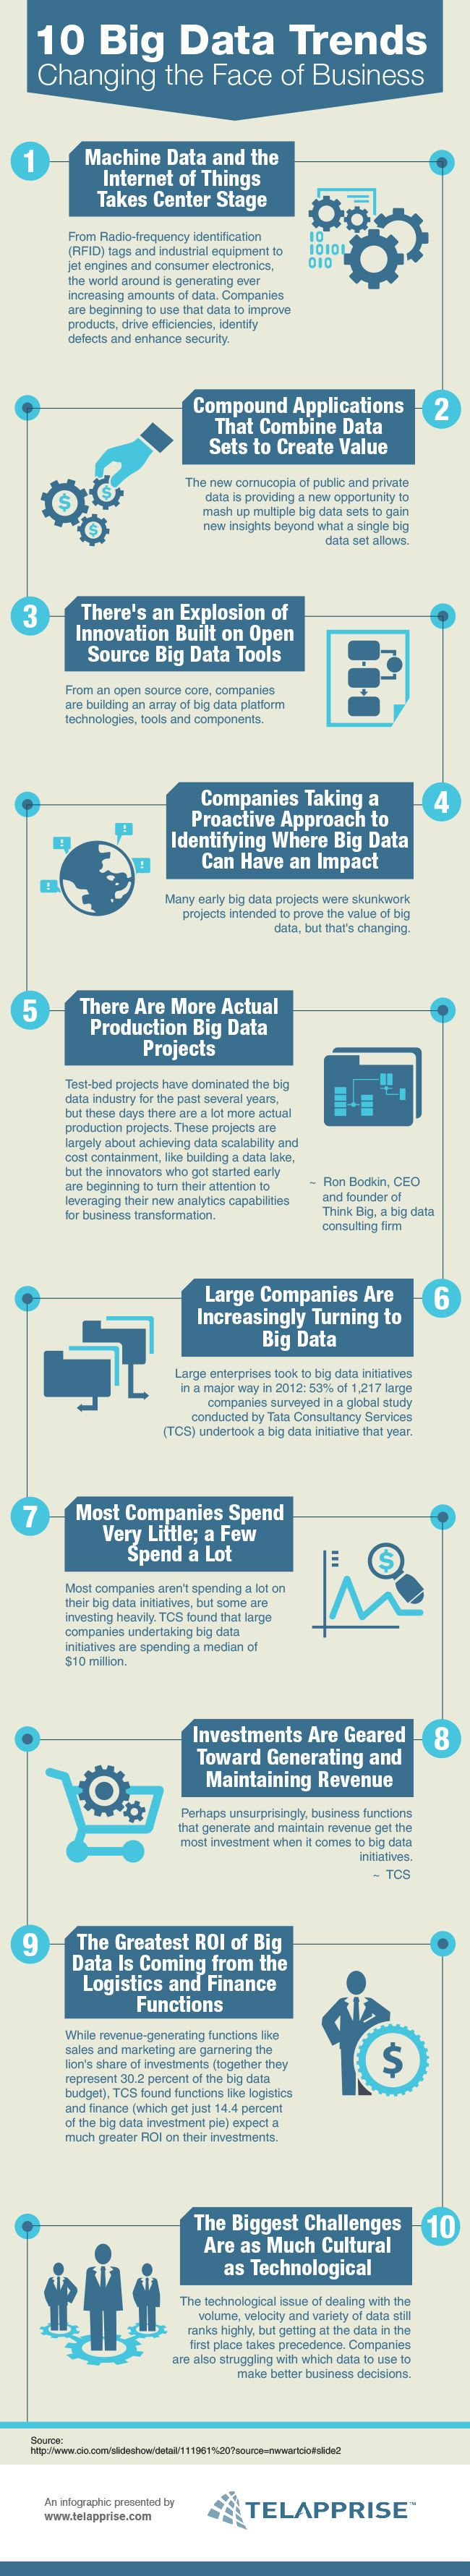 164 best Big Data images on Pinterest